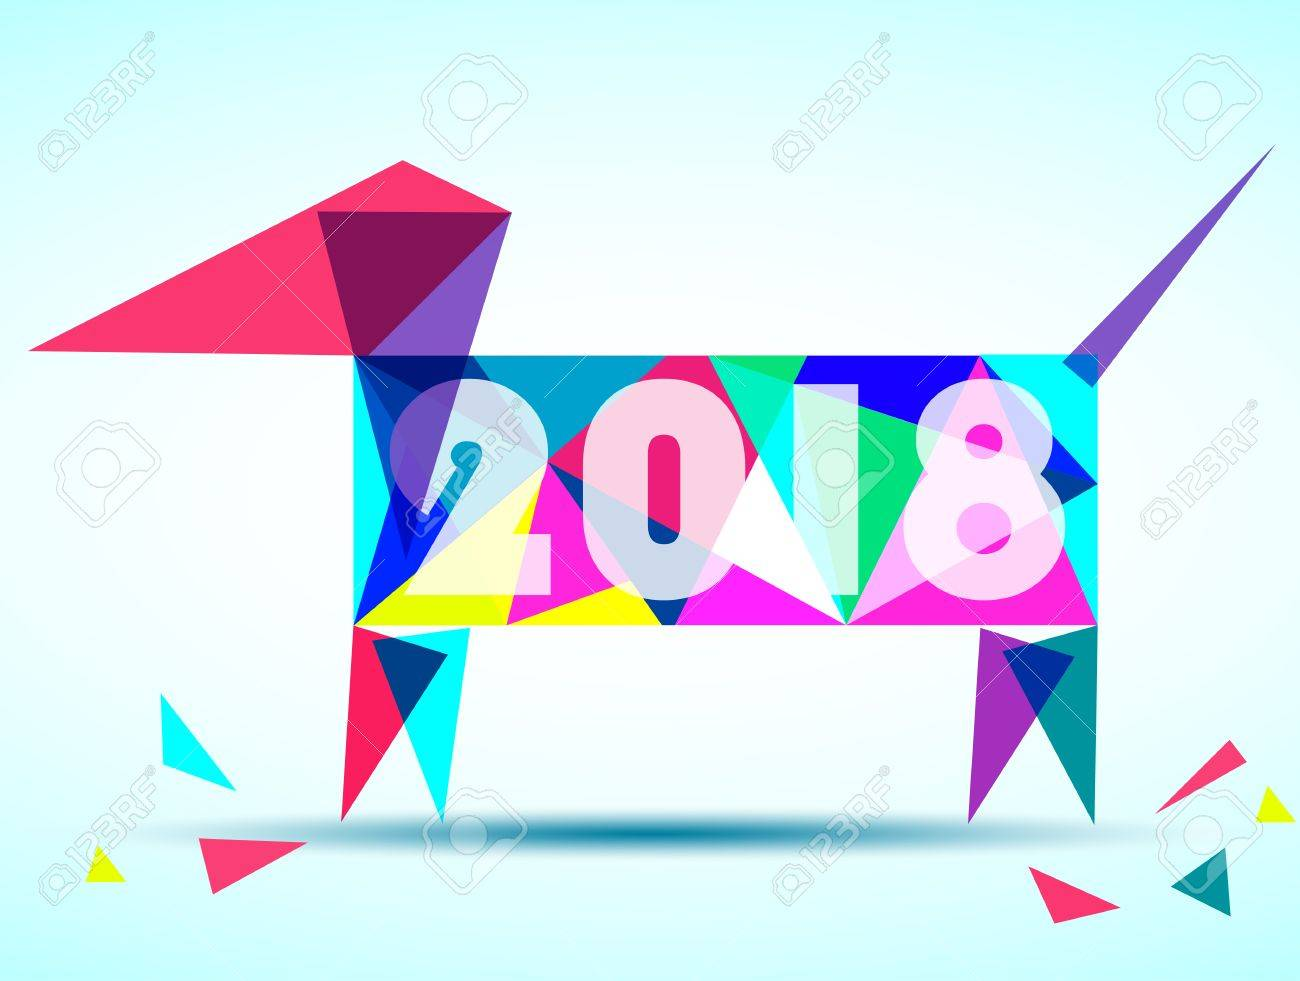 Happy New Year 2018 Year Of Dog Greeting Card Design Vector